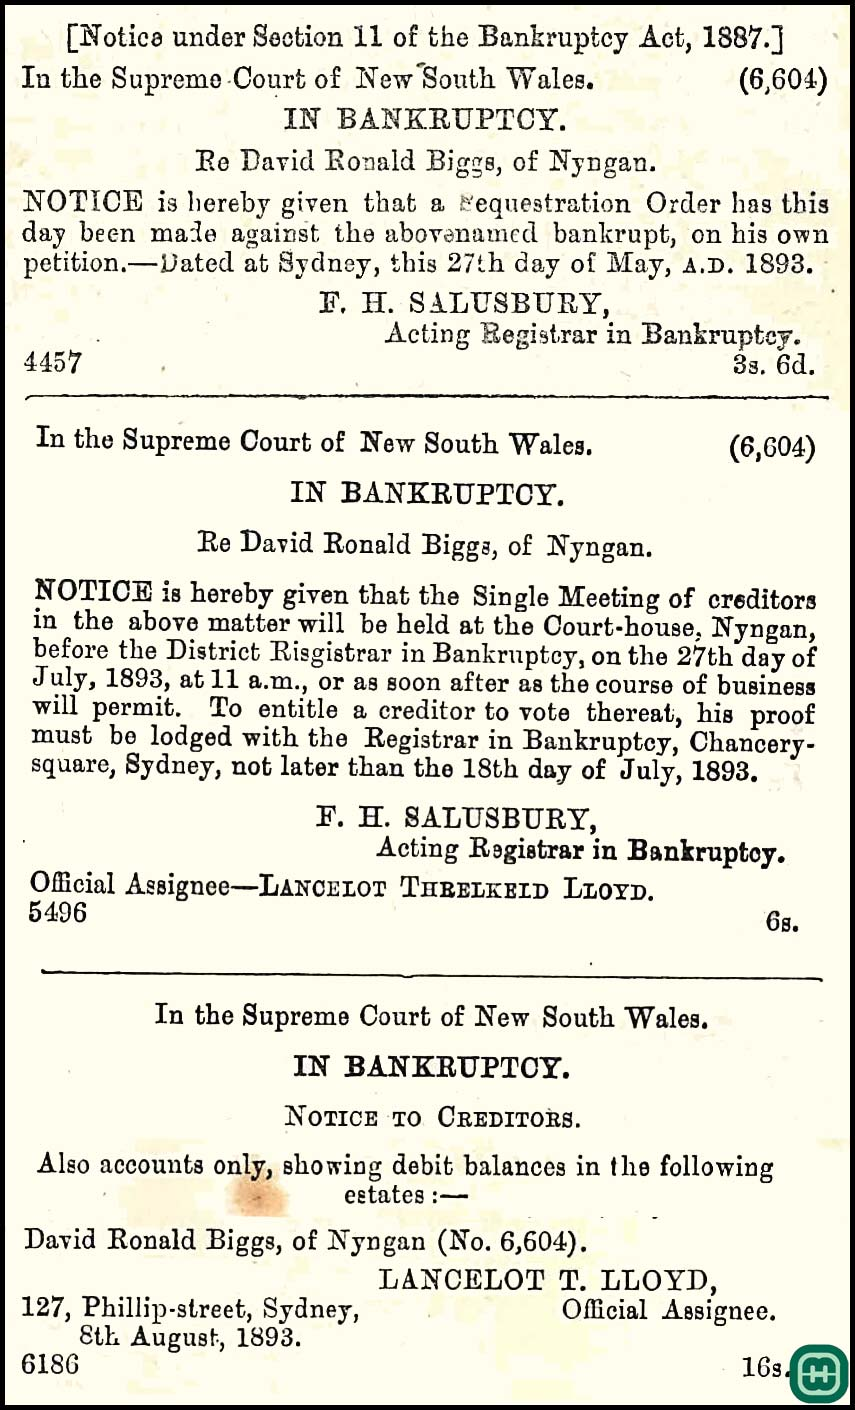 In June 1893, the Bankruptcy Court made sequestration to David Ronald Biggs, of Nyngan, to Mr. L.T. Lloyd, official assignee